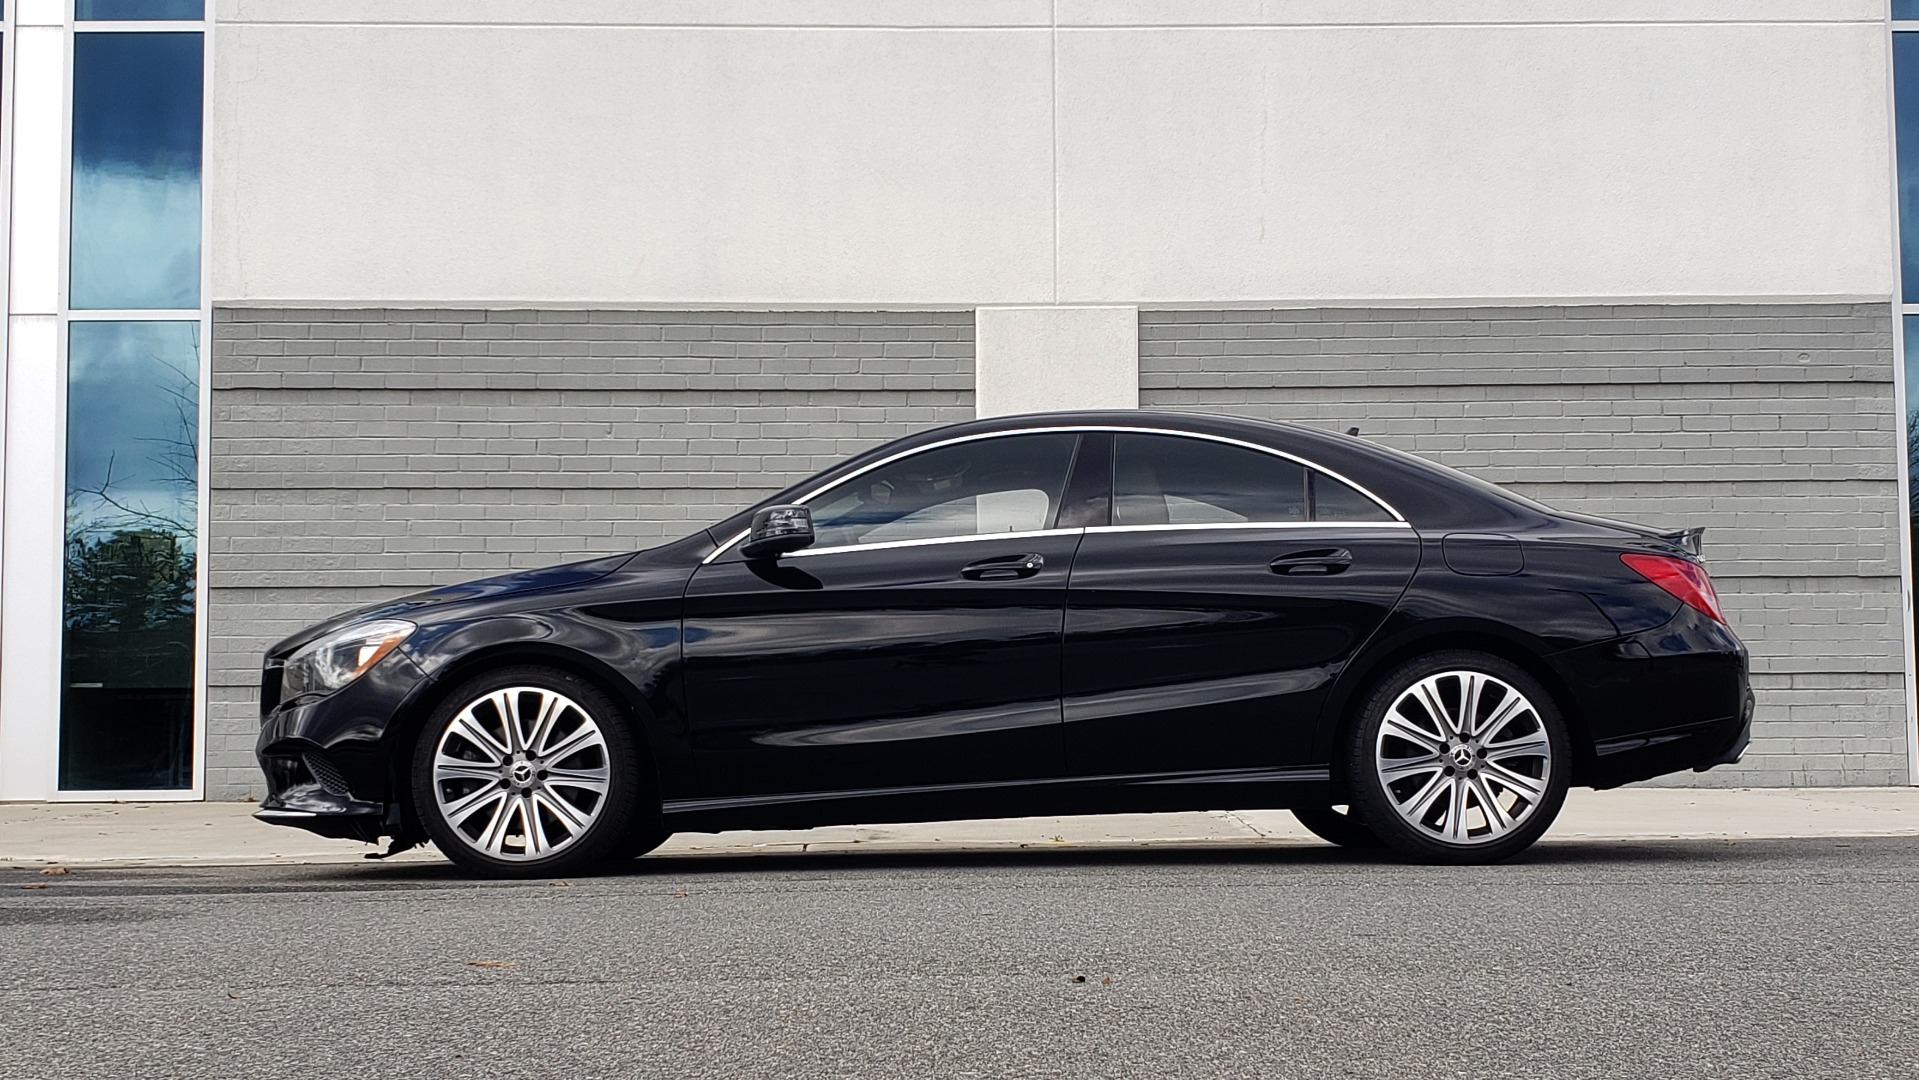 Used 2018 Mercedes-Benz CLA 250 / HEATED SEATS / BSA / APPLE CARPLAY / ANDROID AUTO / 18IN WHEEL for sale $24,195 at Formula Imports in Charlotte NC 28227 2